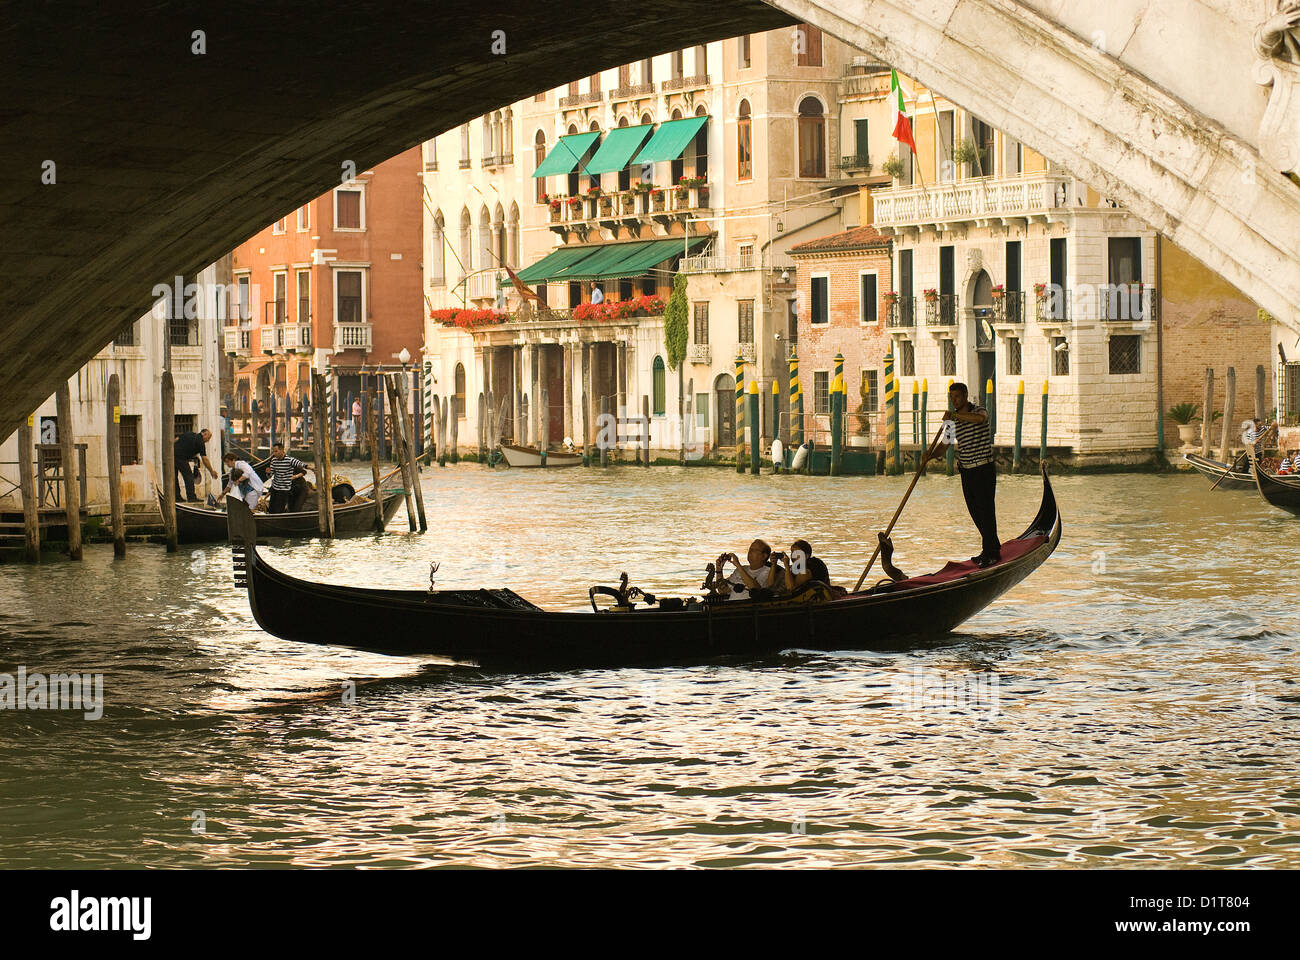 Italy, Venice. Tourist take snap shots from a gondola as they pass under the Rialto Bridge. - Stock Image